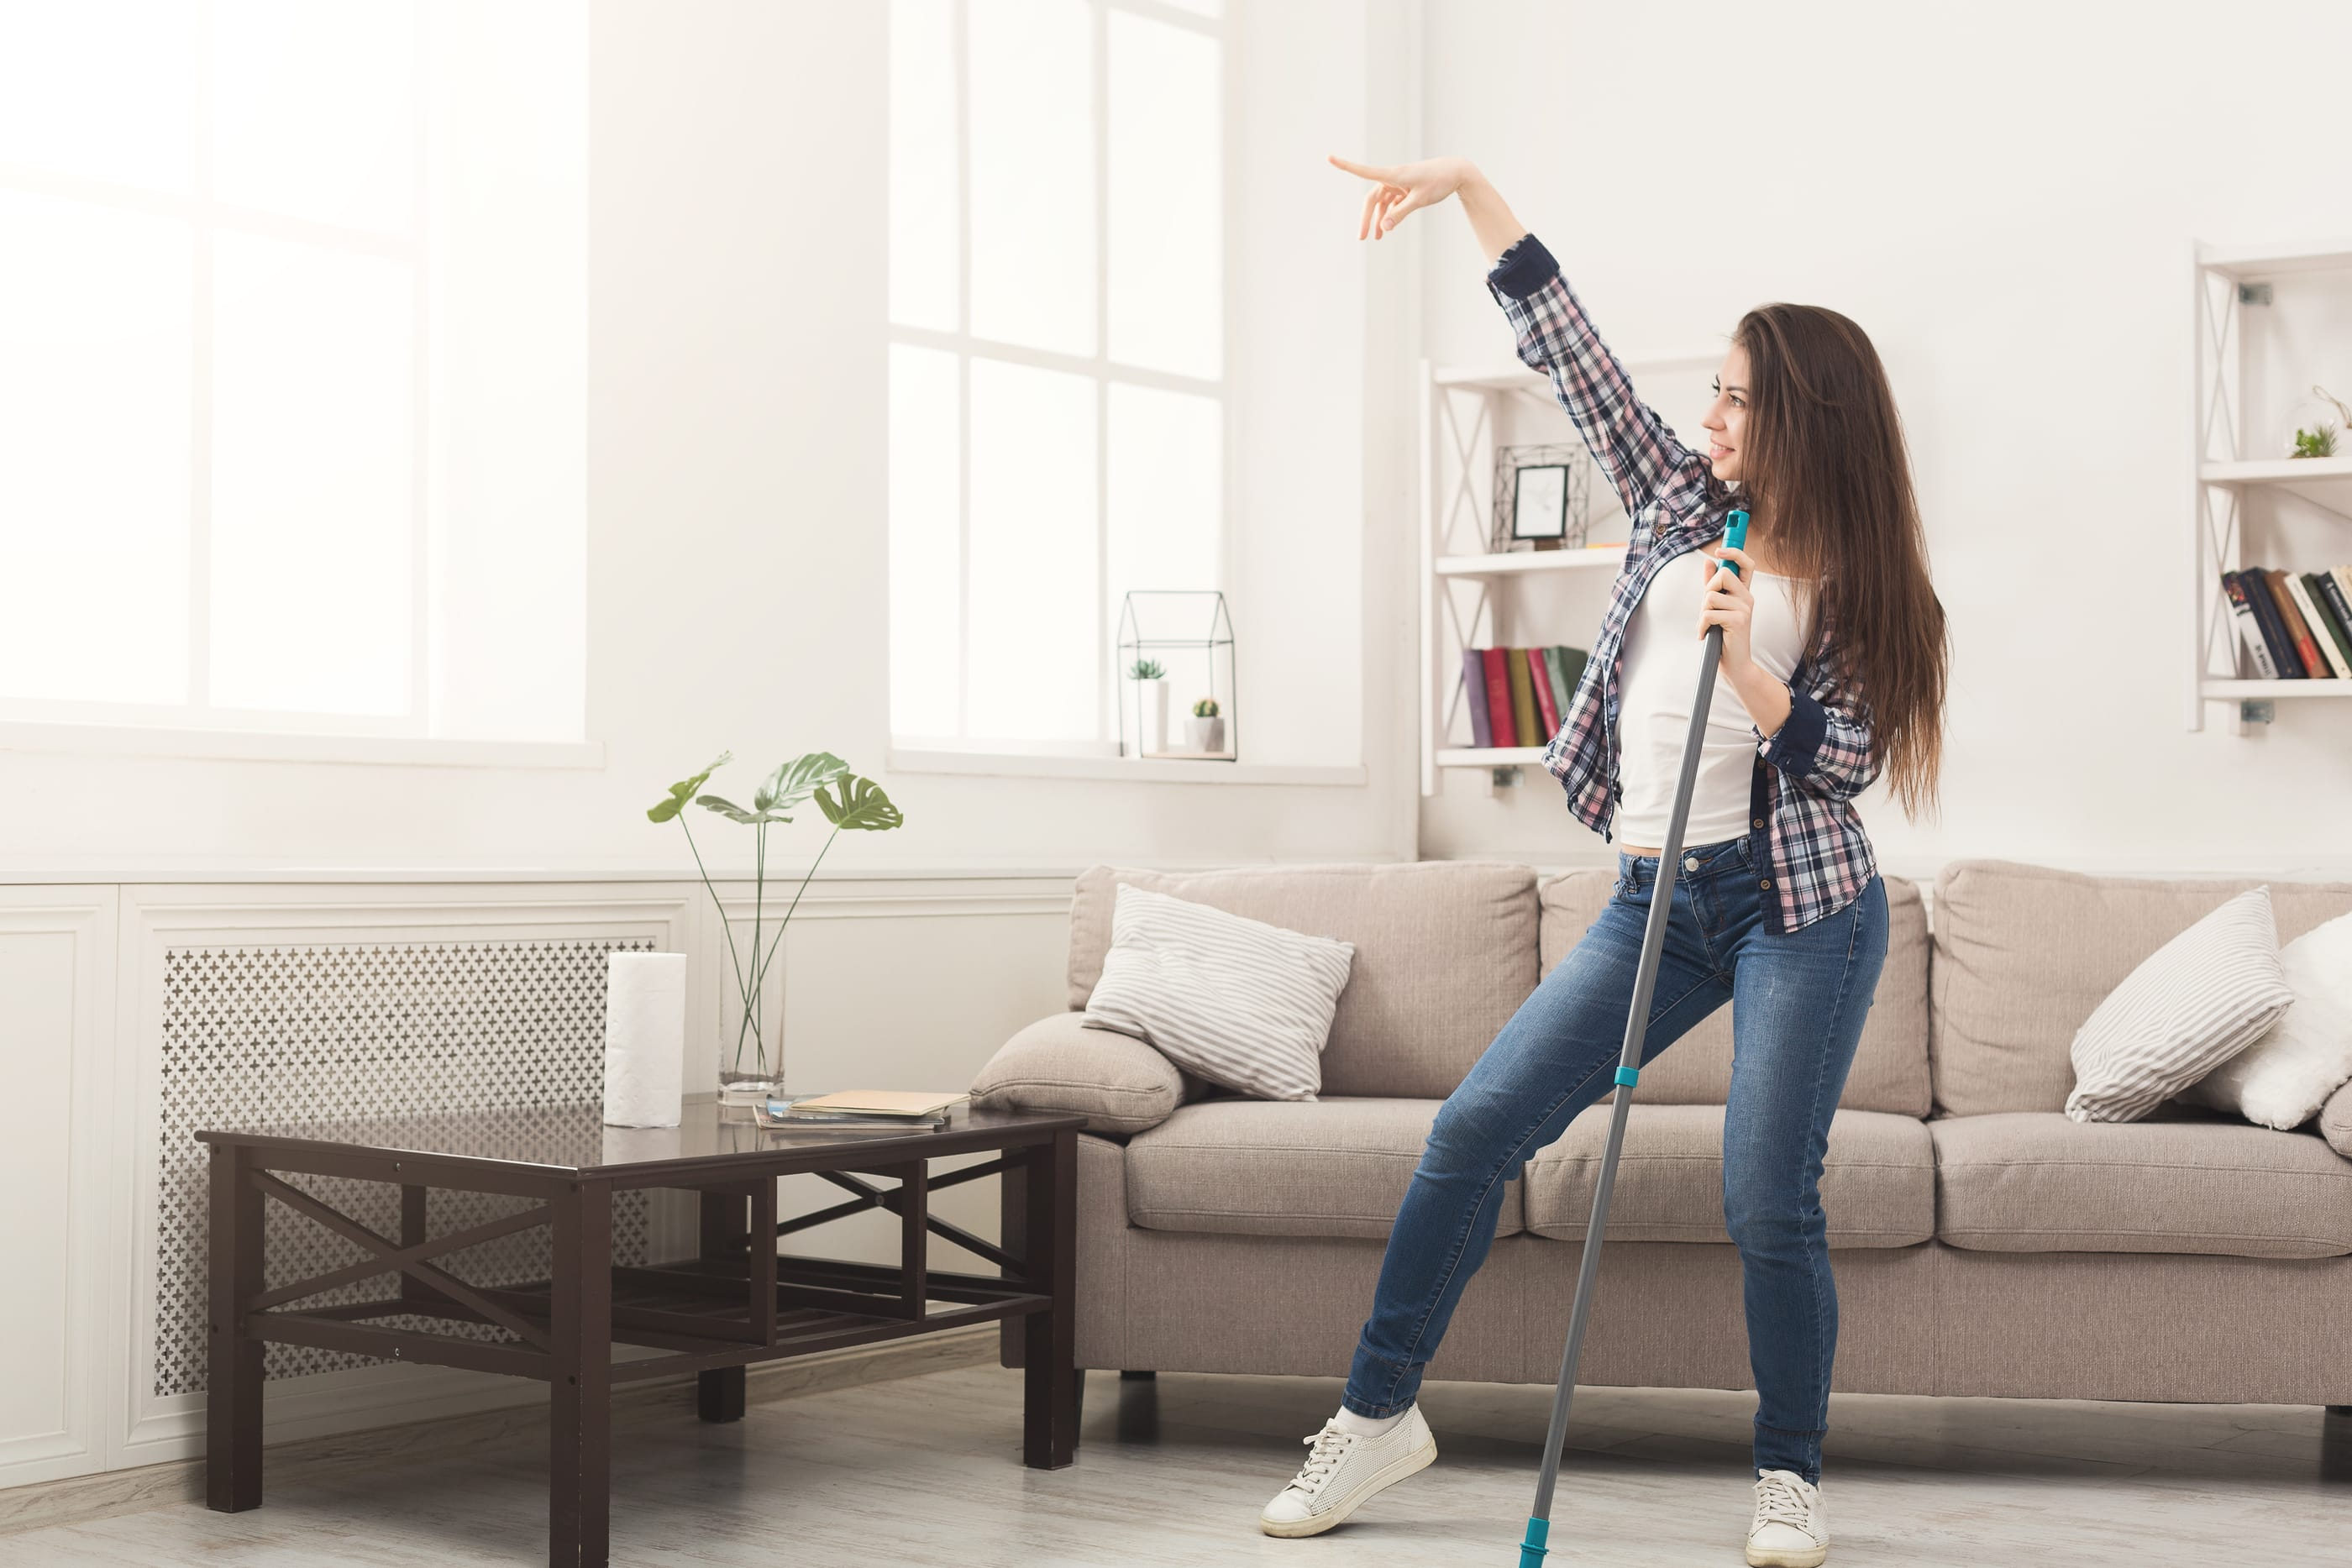 20 Songs to Pump You Up for Cleaning Your Home